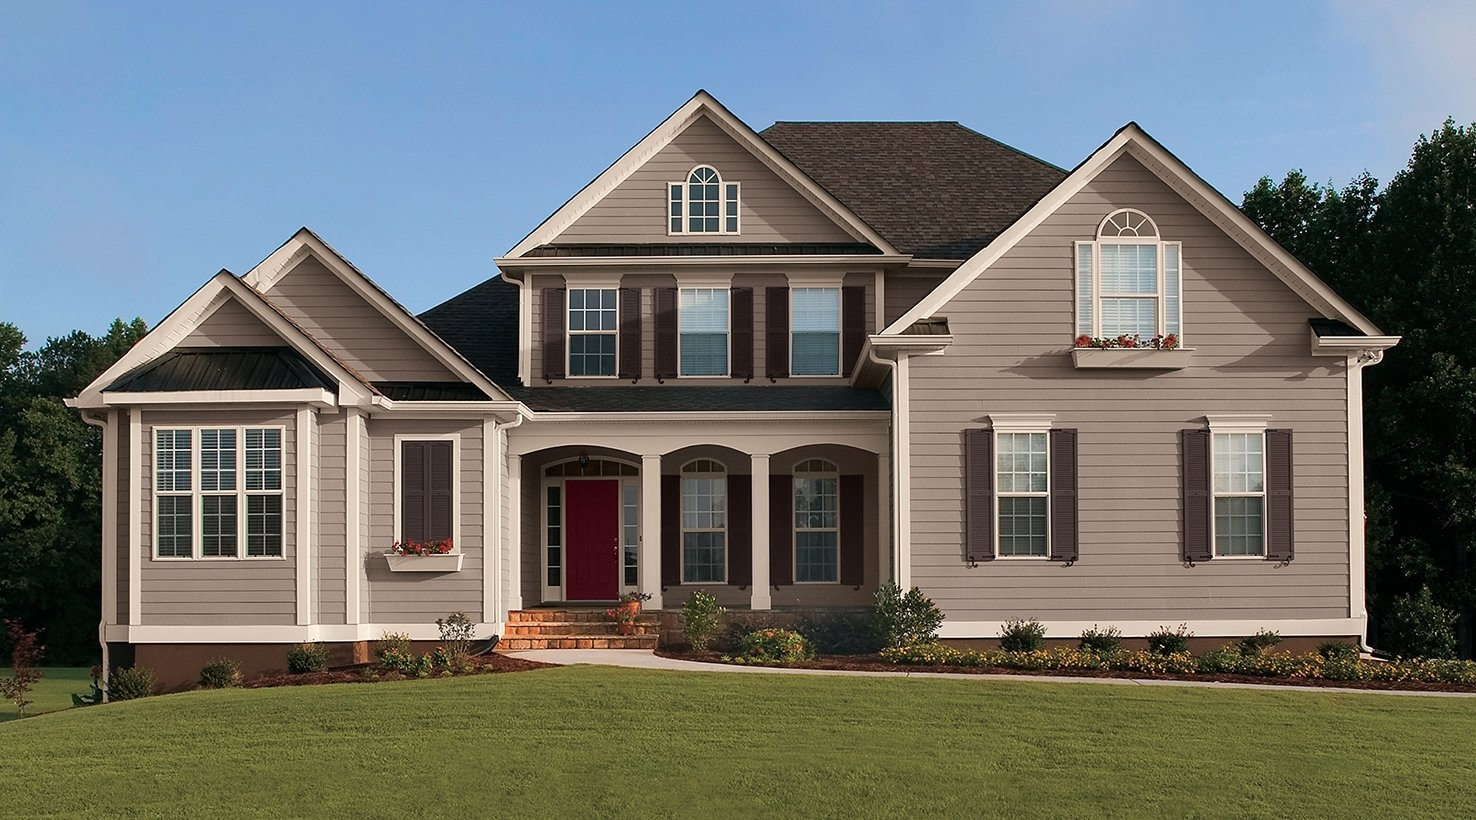 10 Attractive Exterior House Paint Ideas Pictures exterior color inspiration body paint colors sherwin williams 2020